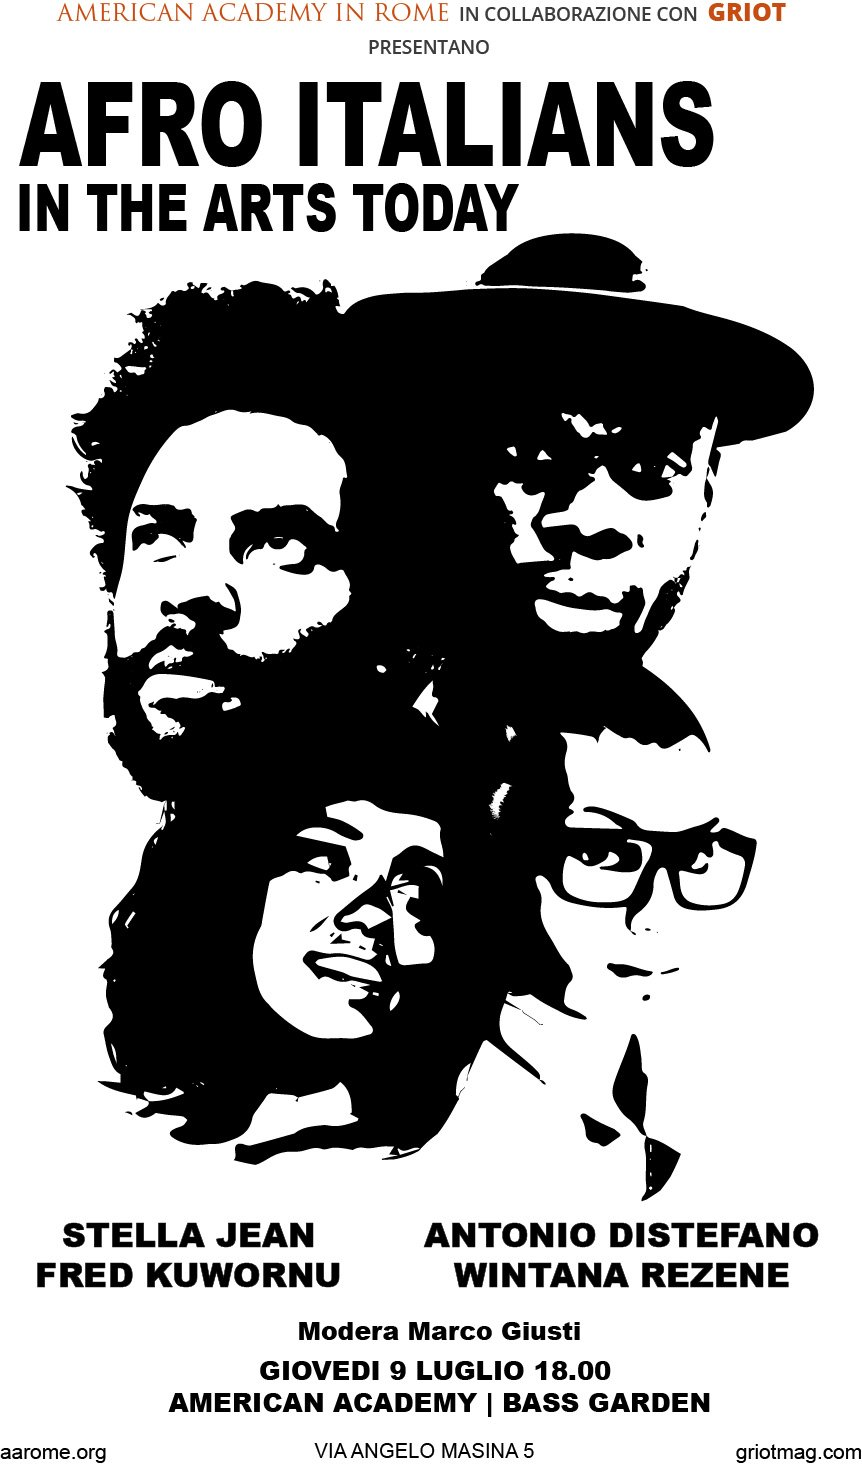 Griot Magazine -Afro Italians in the Arts Today